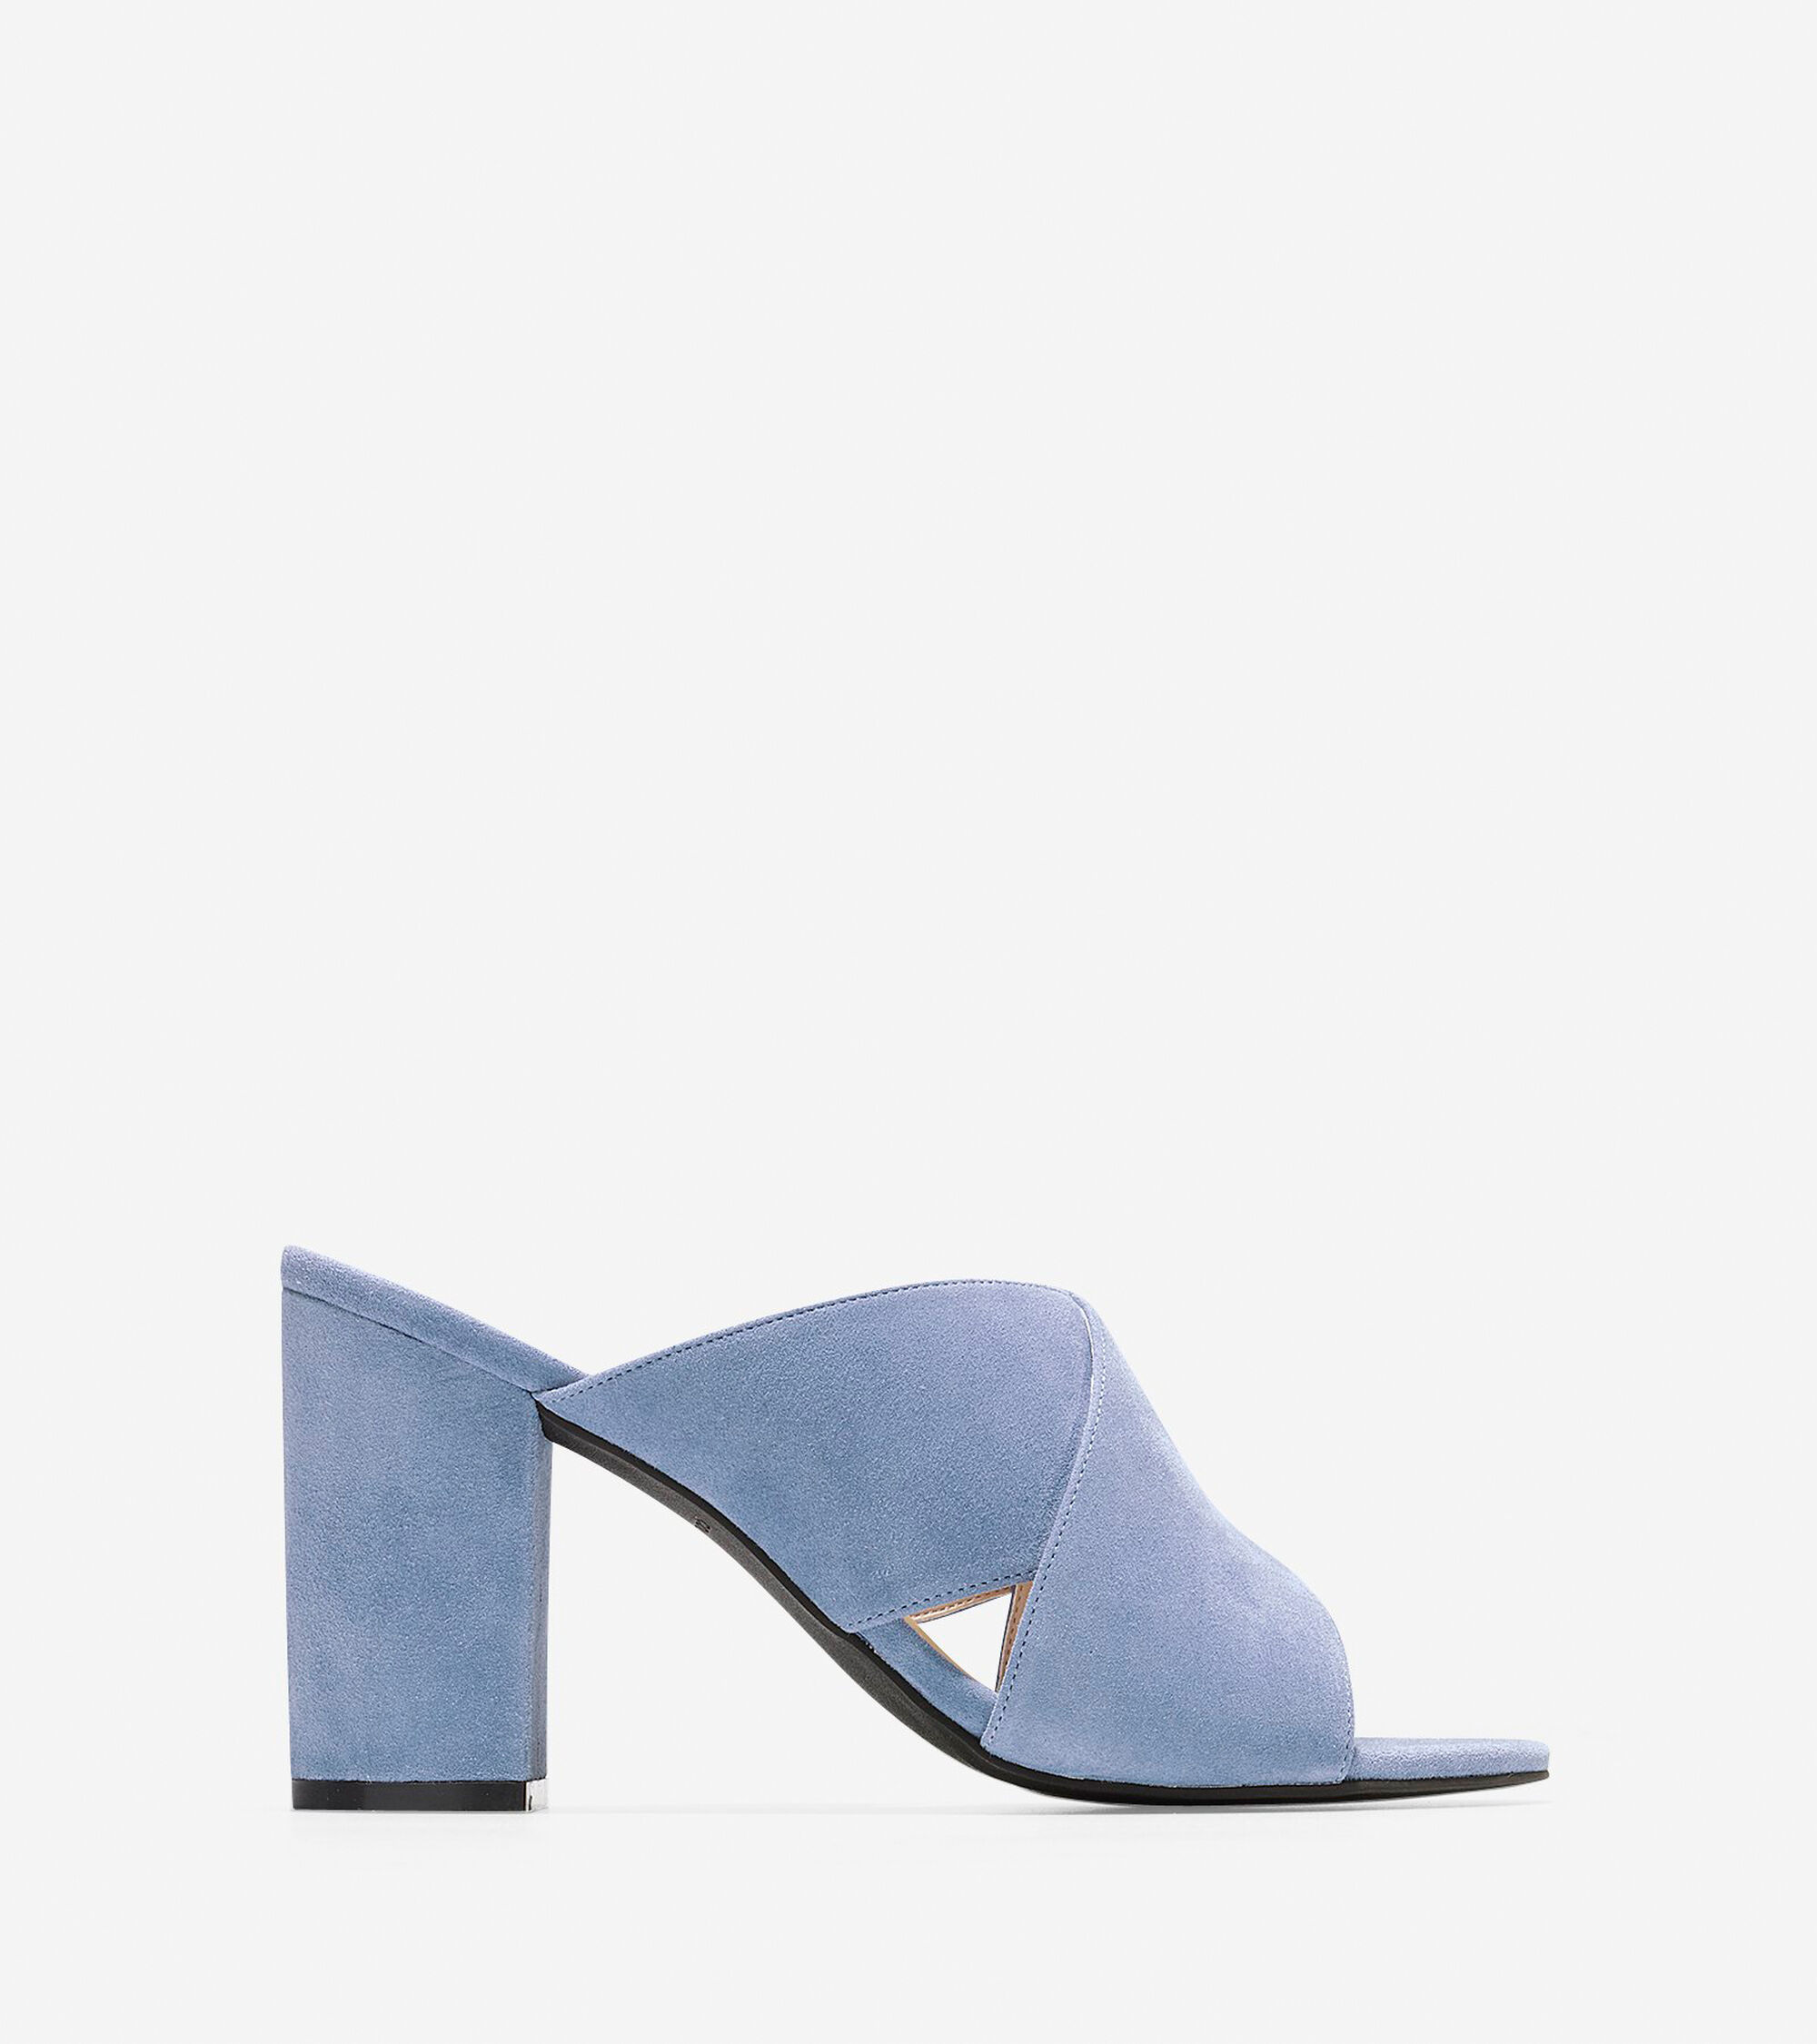 50959913d3f4 Women s Gabby Sandals 85mm in Cornwall Blue Suede